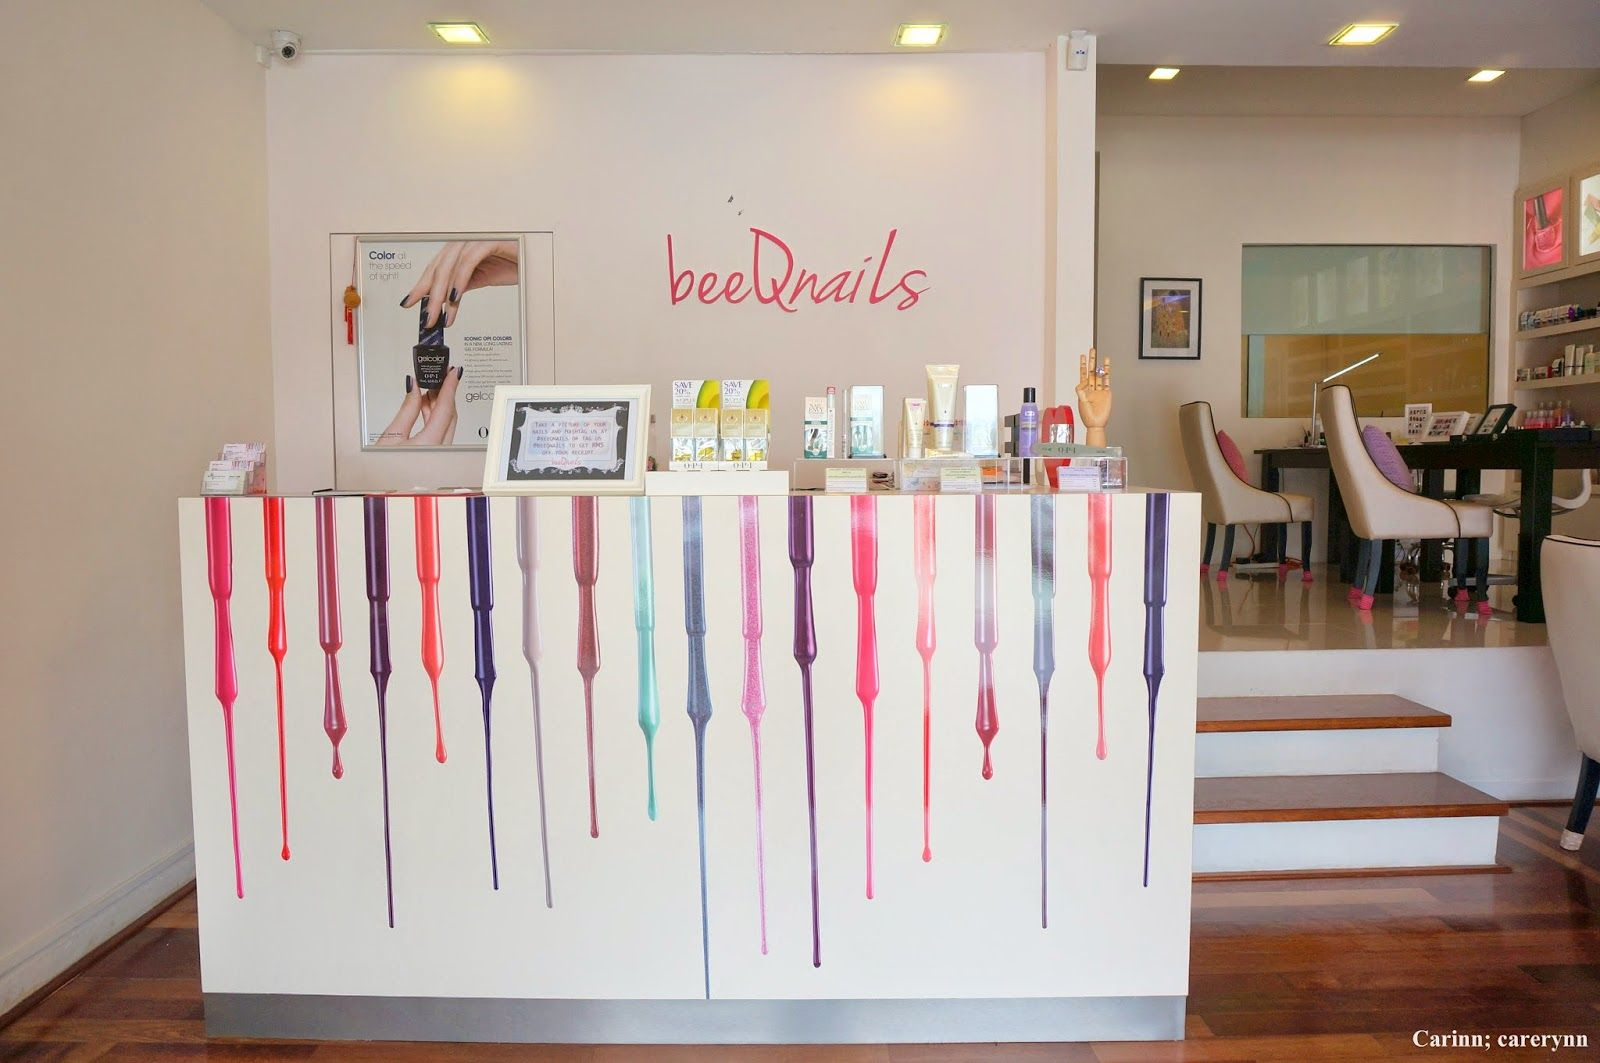 DSC05004.JPG 1,600×1,063 pixeles | Nails soda | Pinterest | Salón ...